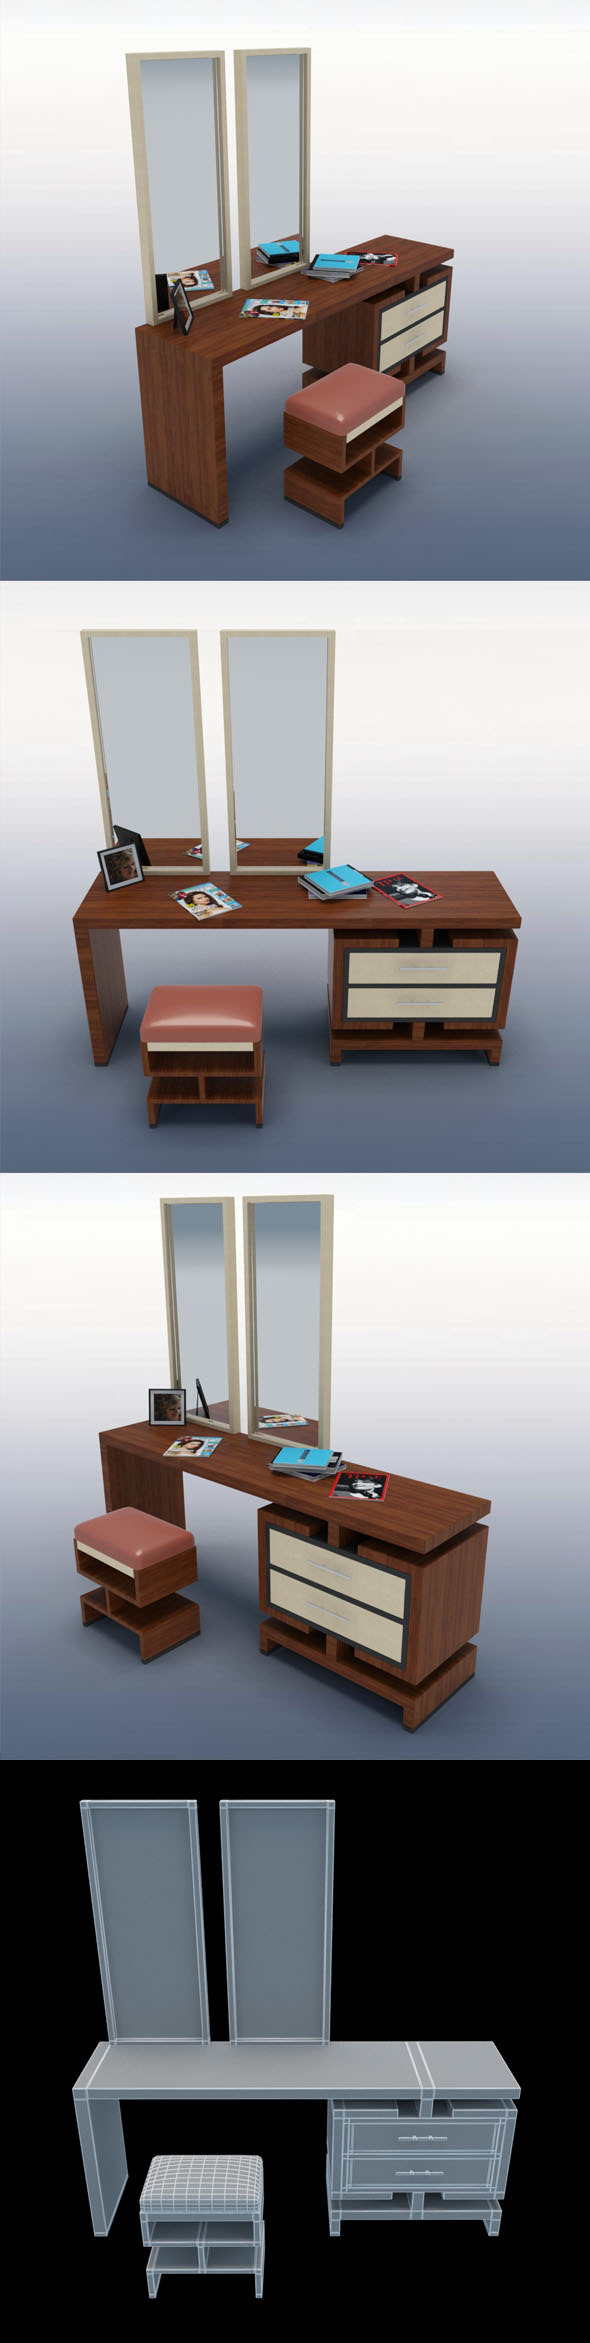 Dressing Table_4 - 3DOcean Item for Sale